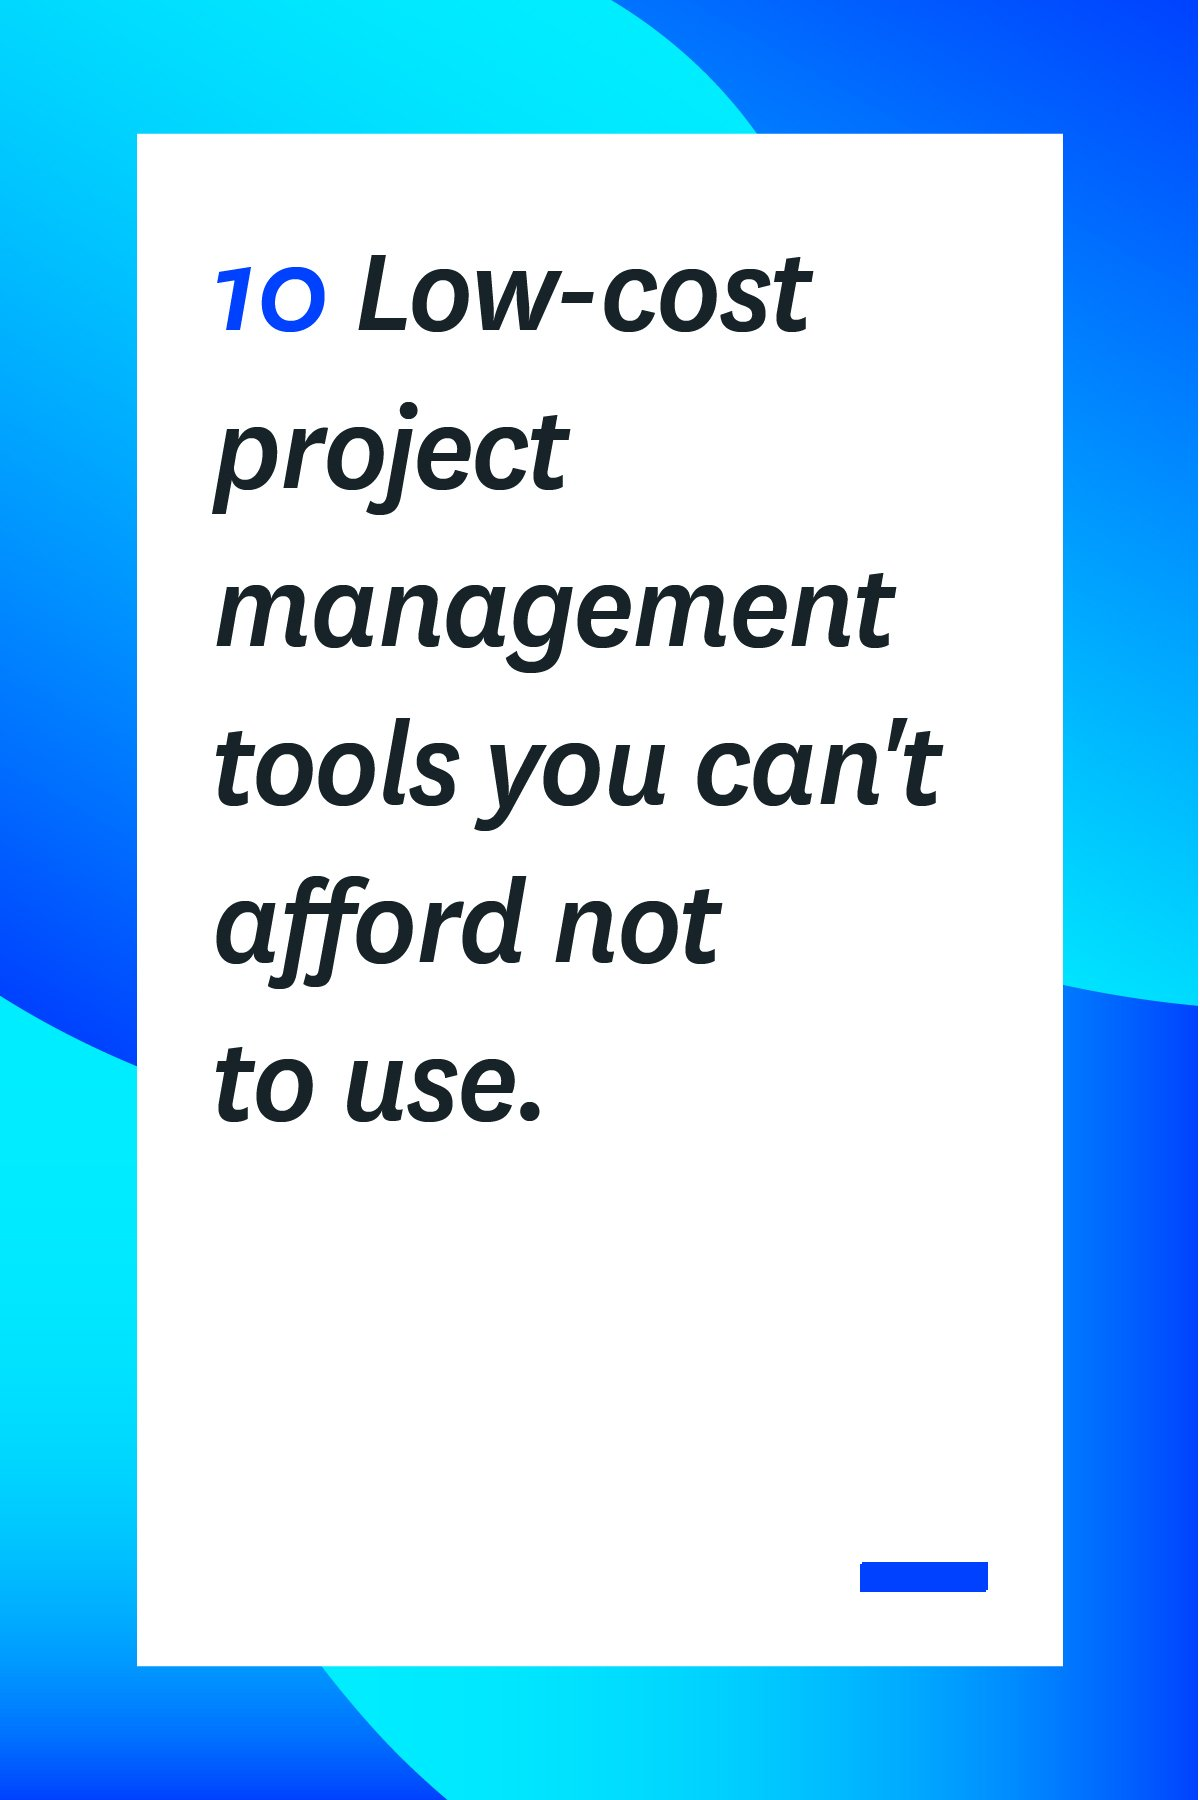 If you want to manage your projects in style, but without breaking the budget, check out this review of 10 low-cost project management tools.